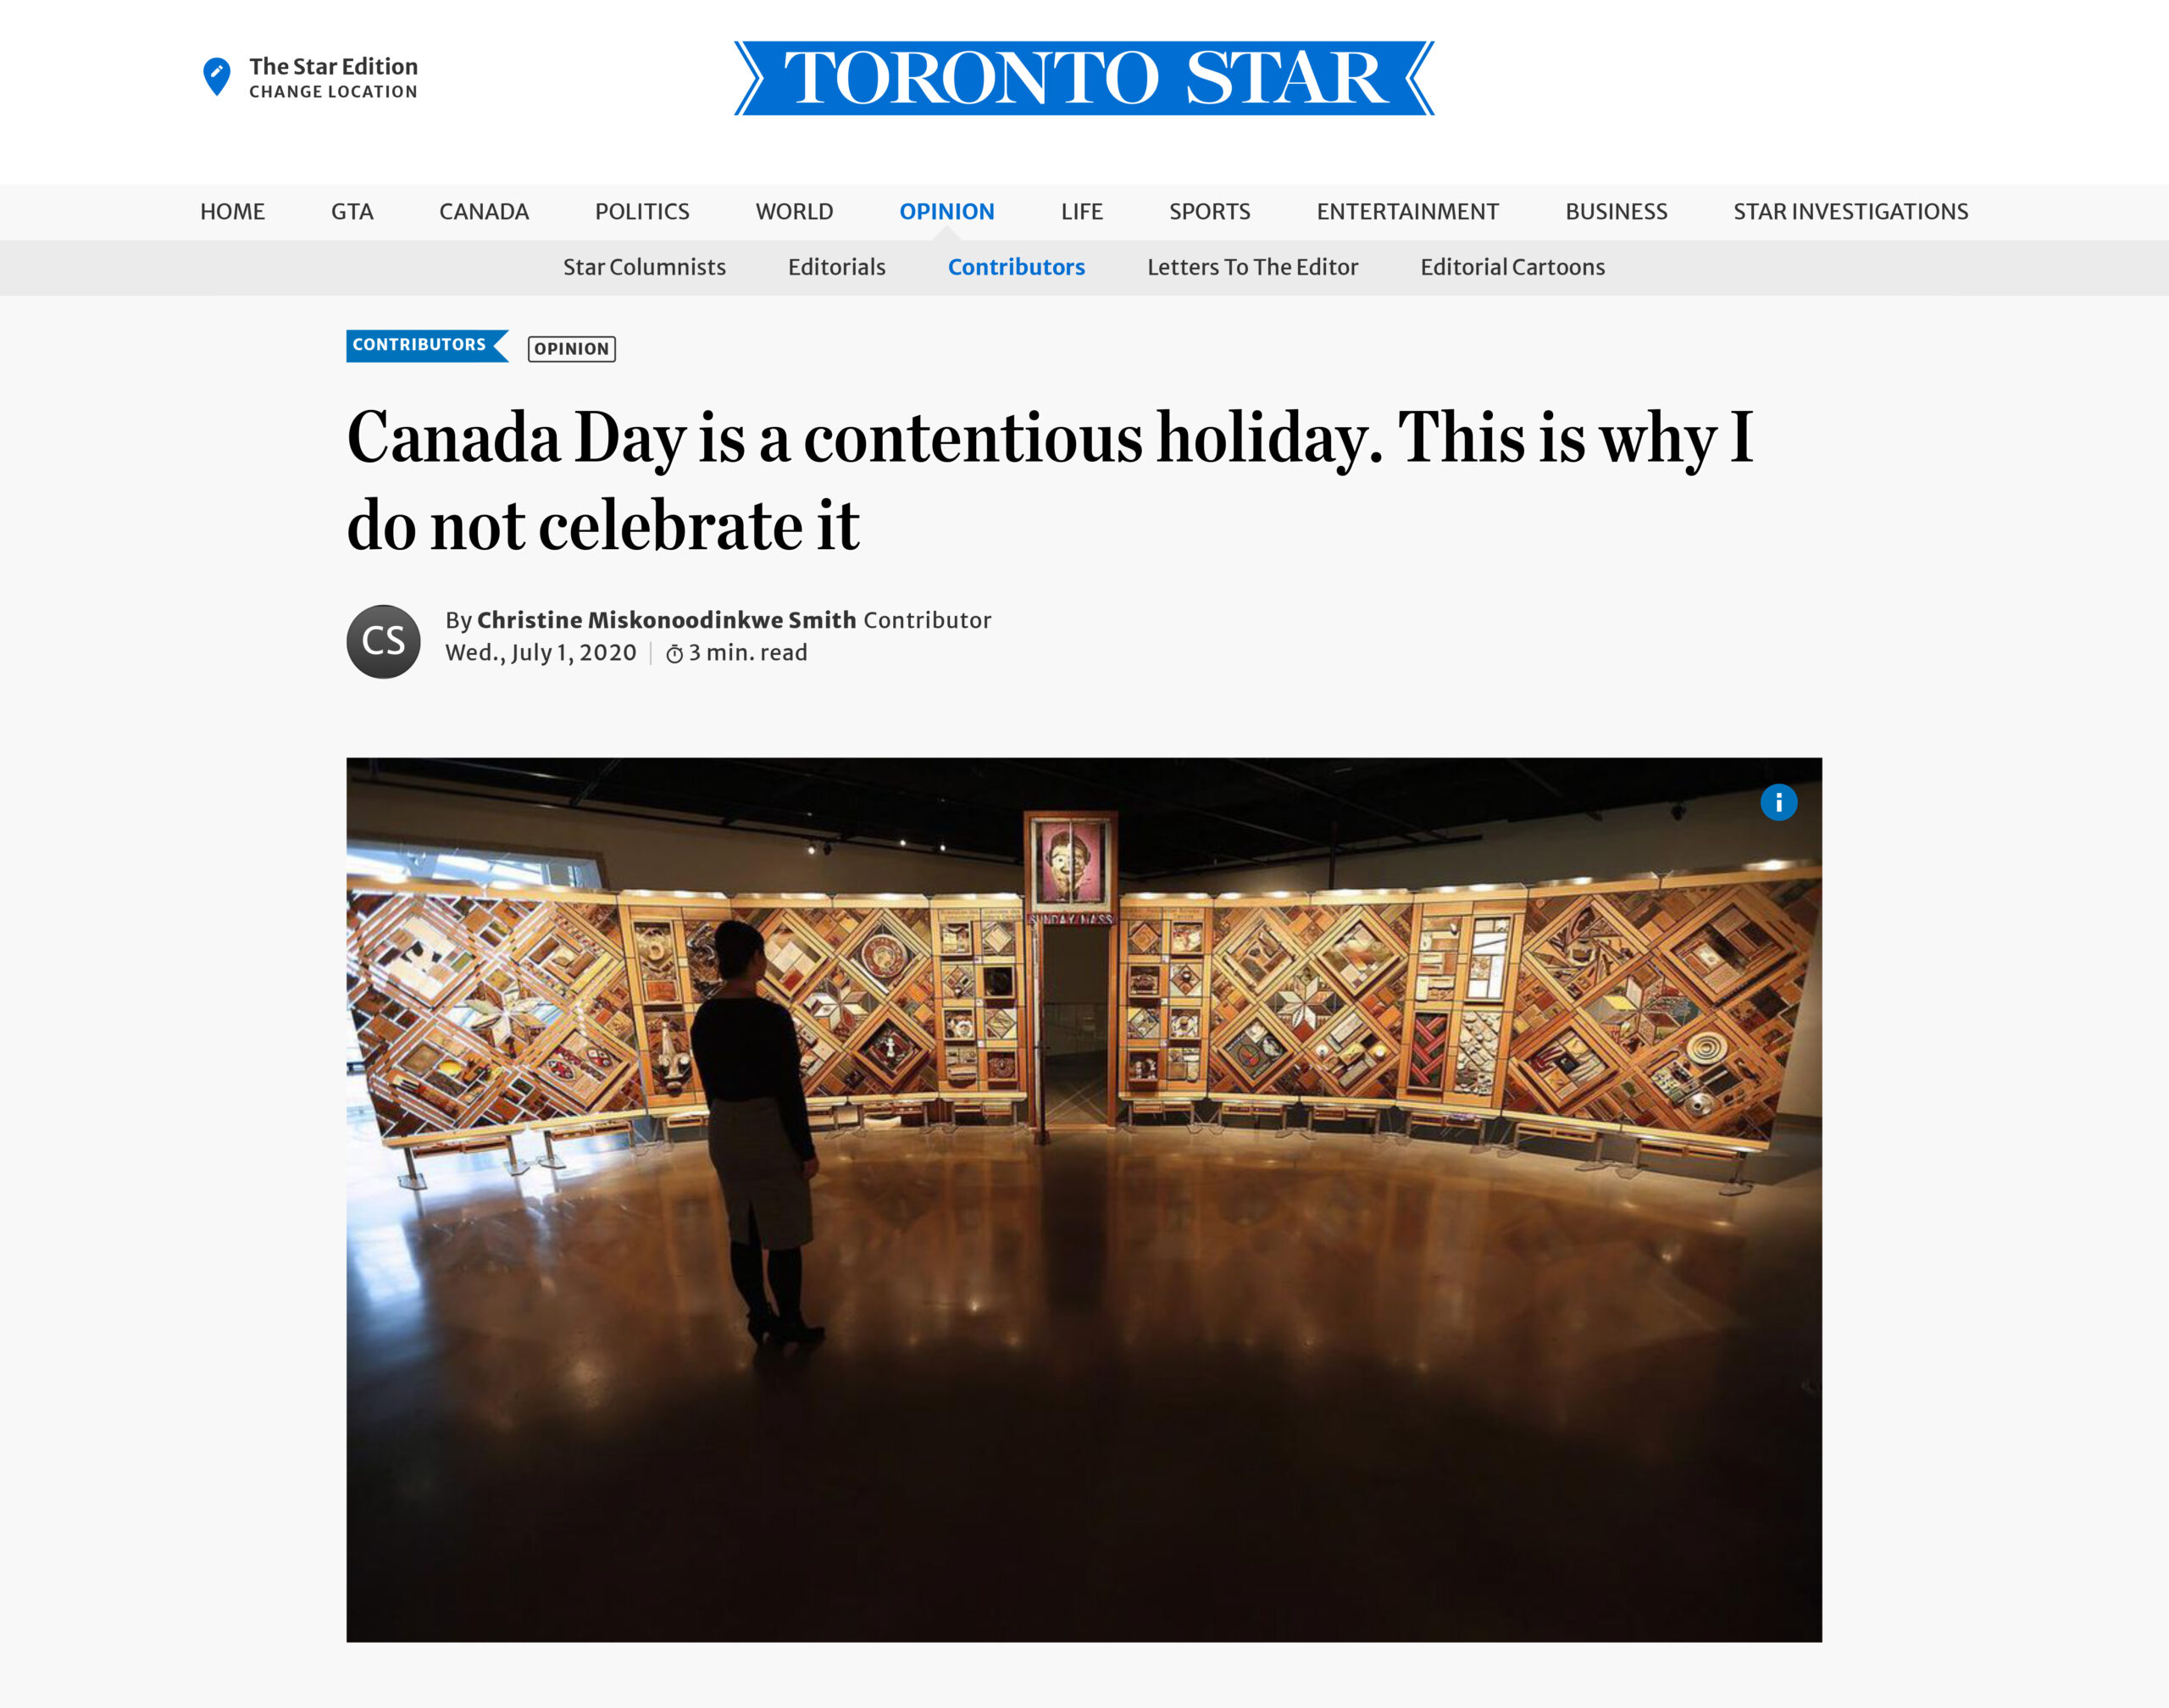 Canada Day is a contentious holiday. This is why I do not celebrate it   The Star